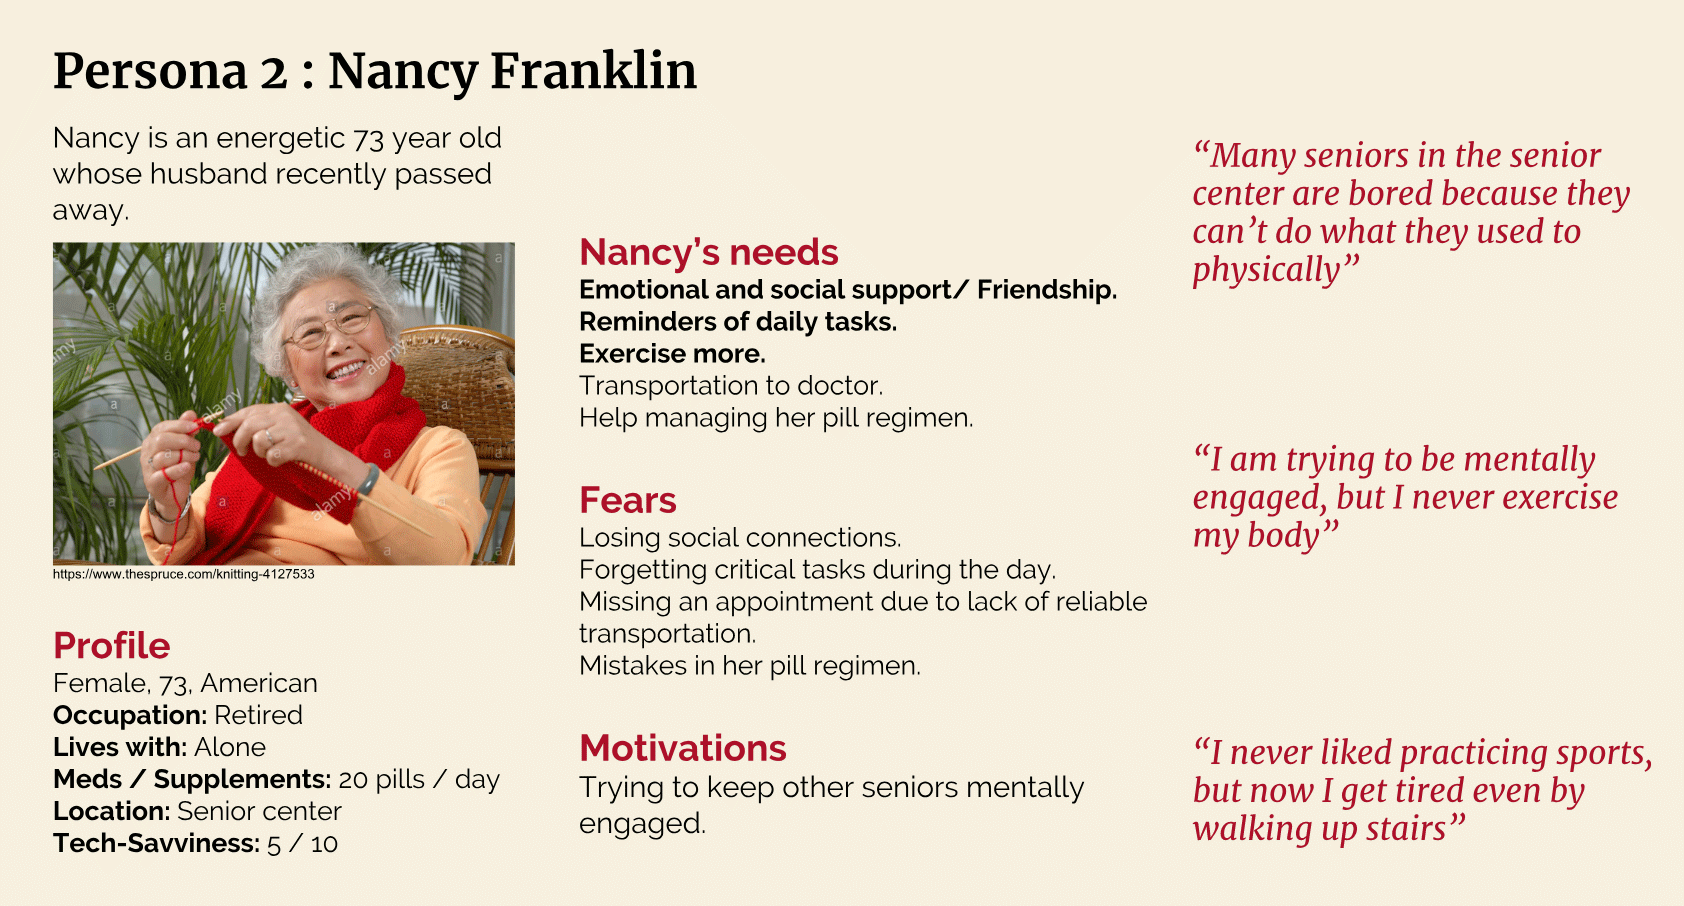 Persona 2: Nancy Franklin